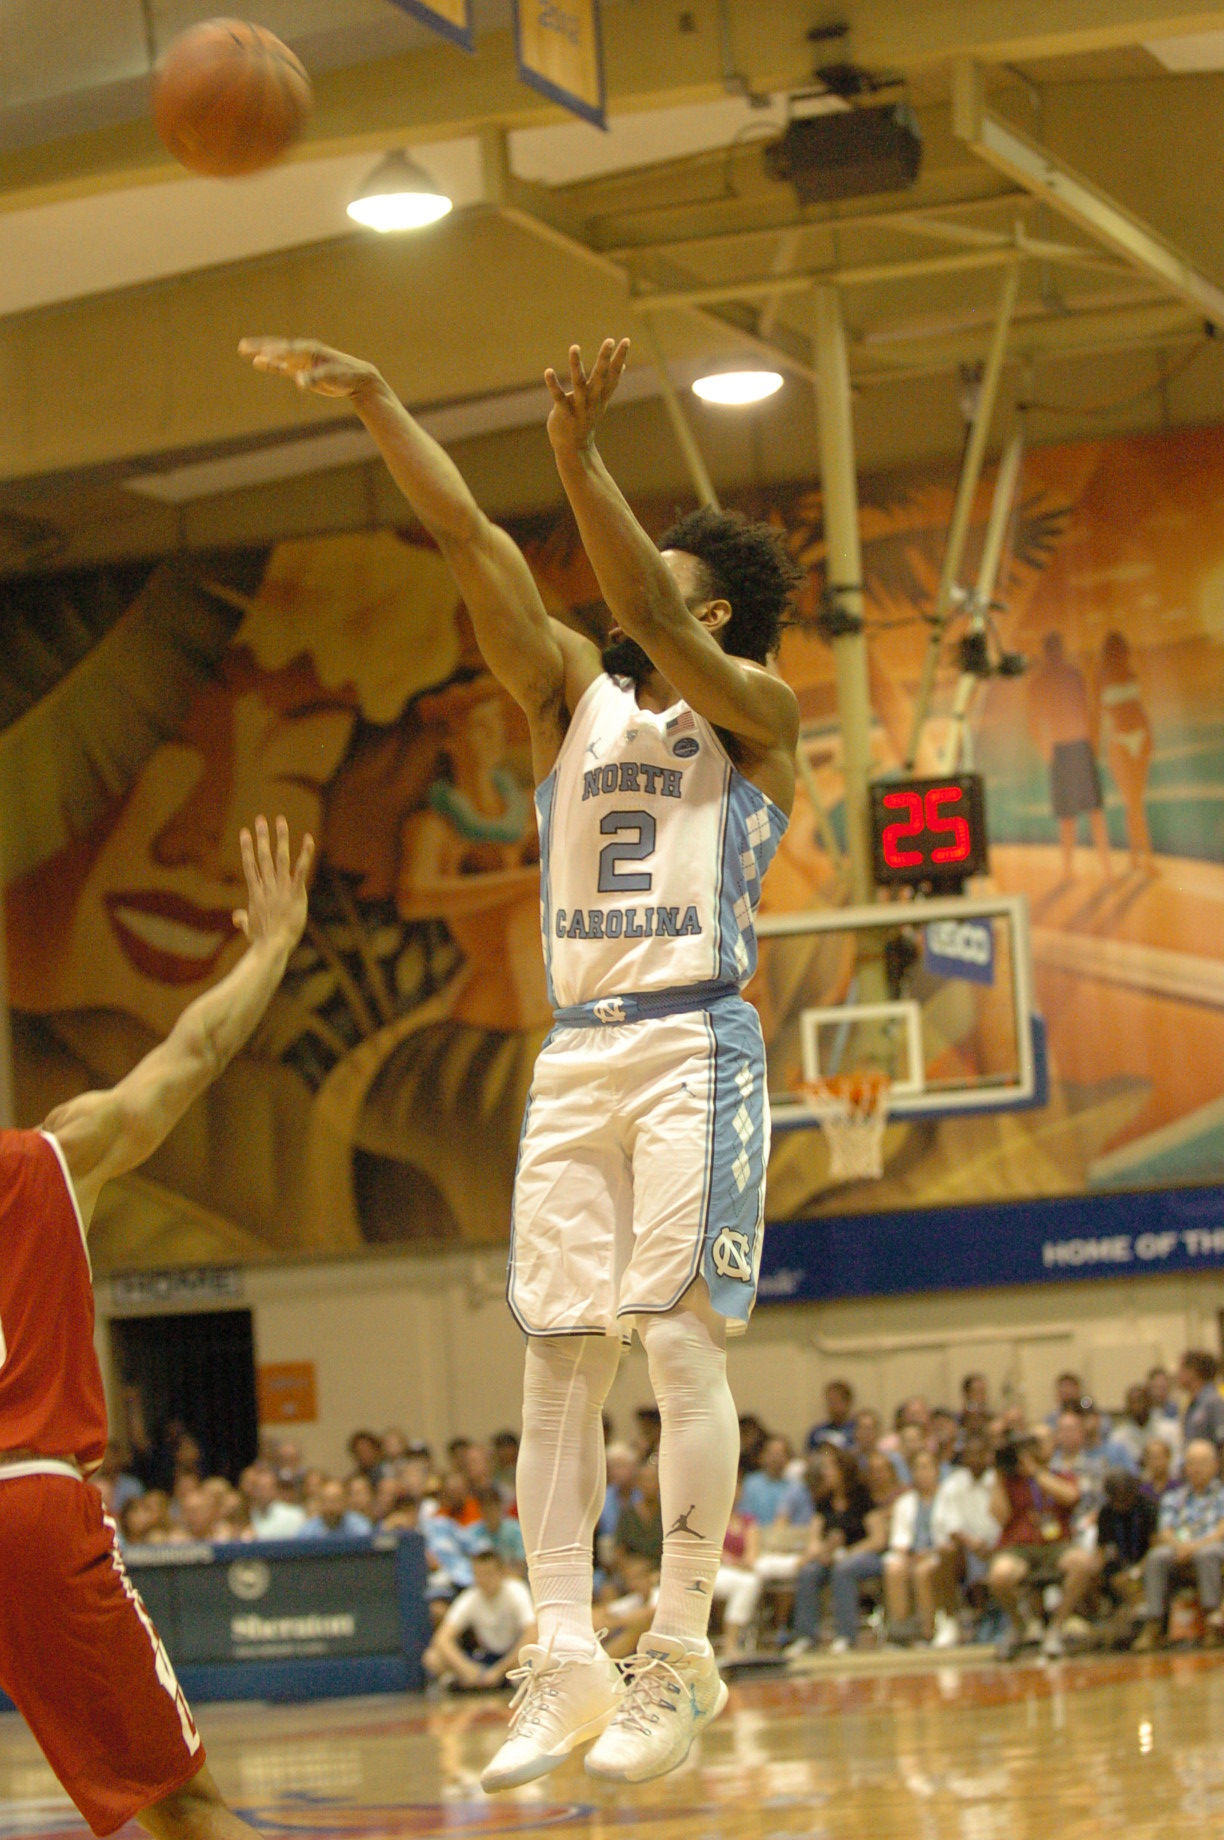 UNC #2 Joel Berry II. Championship game between UW vs UNC at the 2016 Maui Jim Maui Invitational. PC: Joel B. Tamayo.